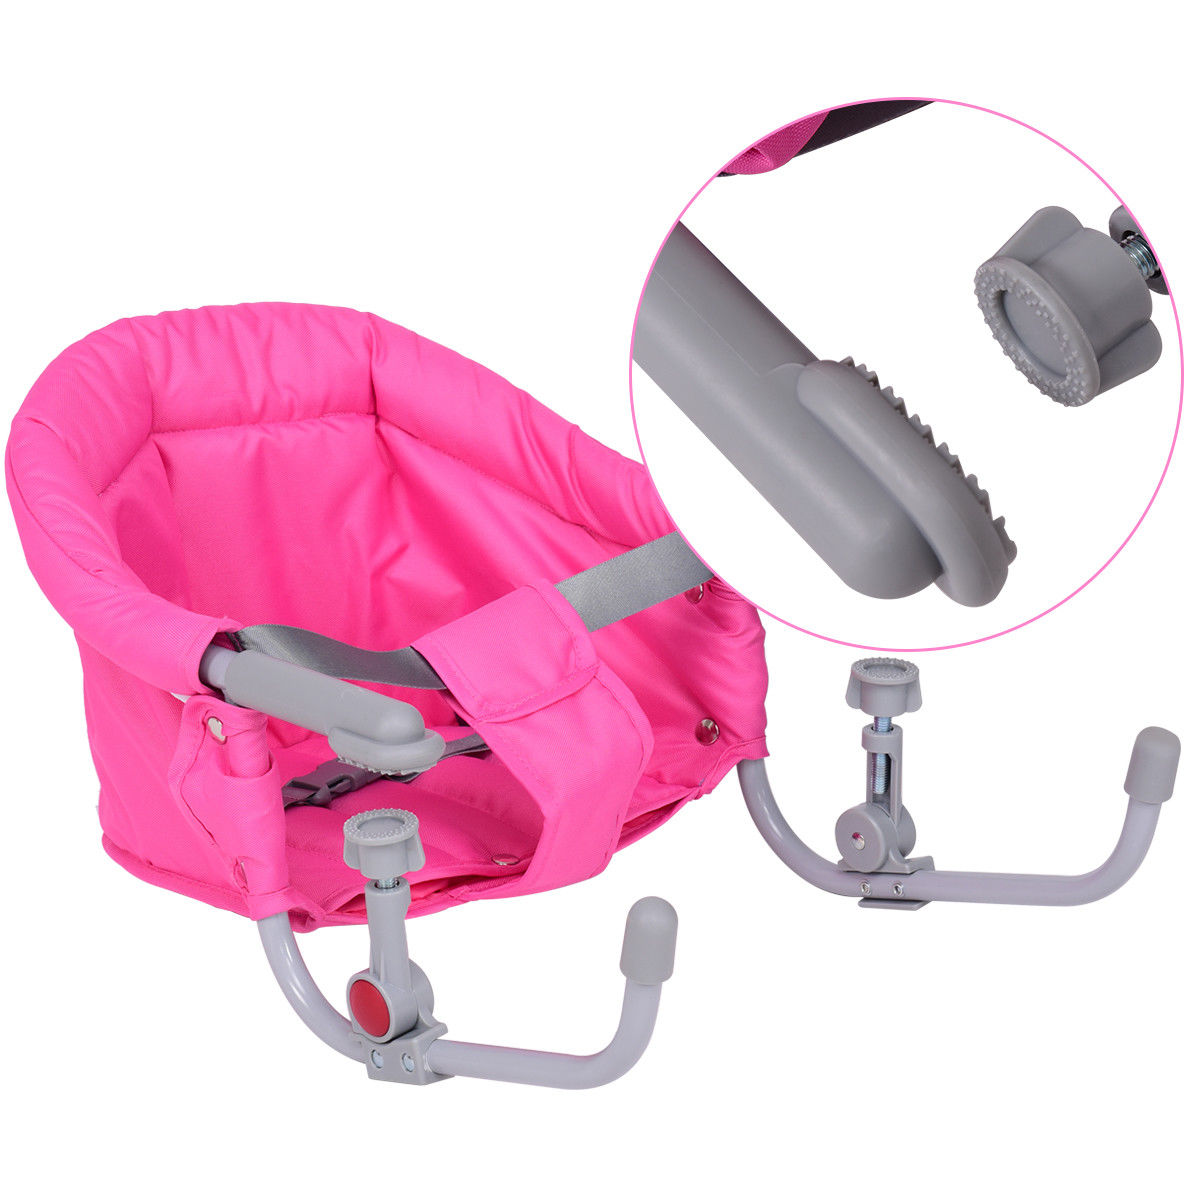 Gymax Pink Foldable Baby Hook On Chair Booster Fast Table Chair Portable Carrying Bag